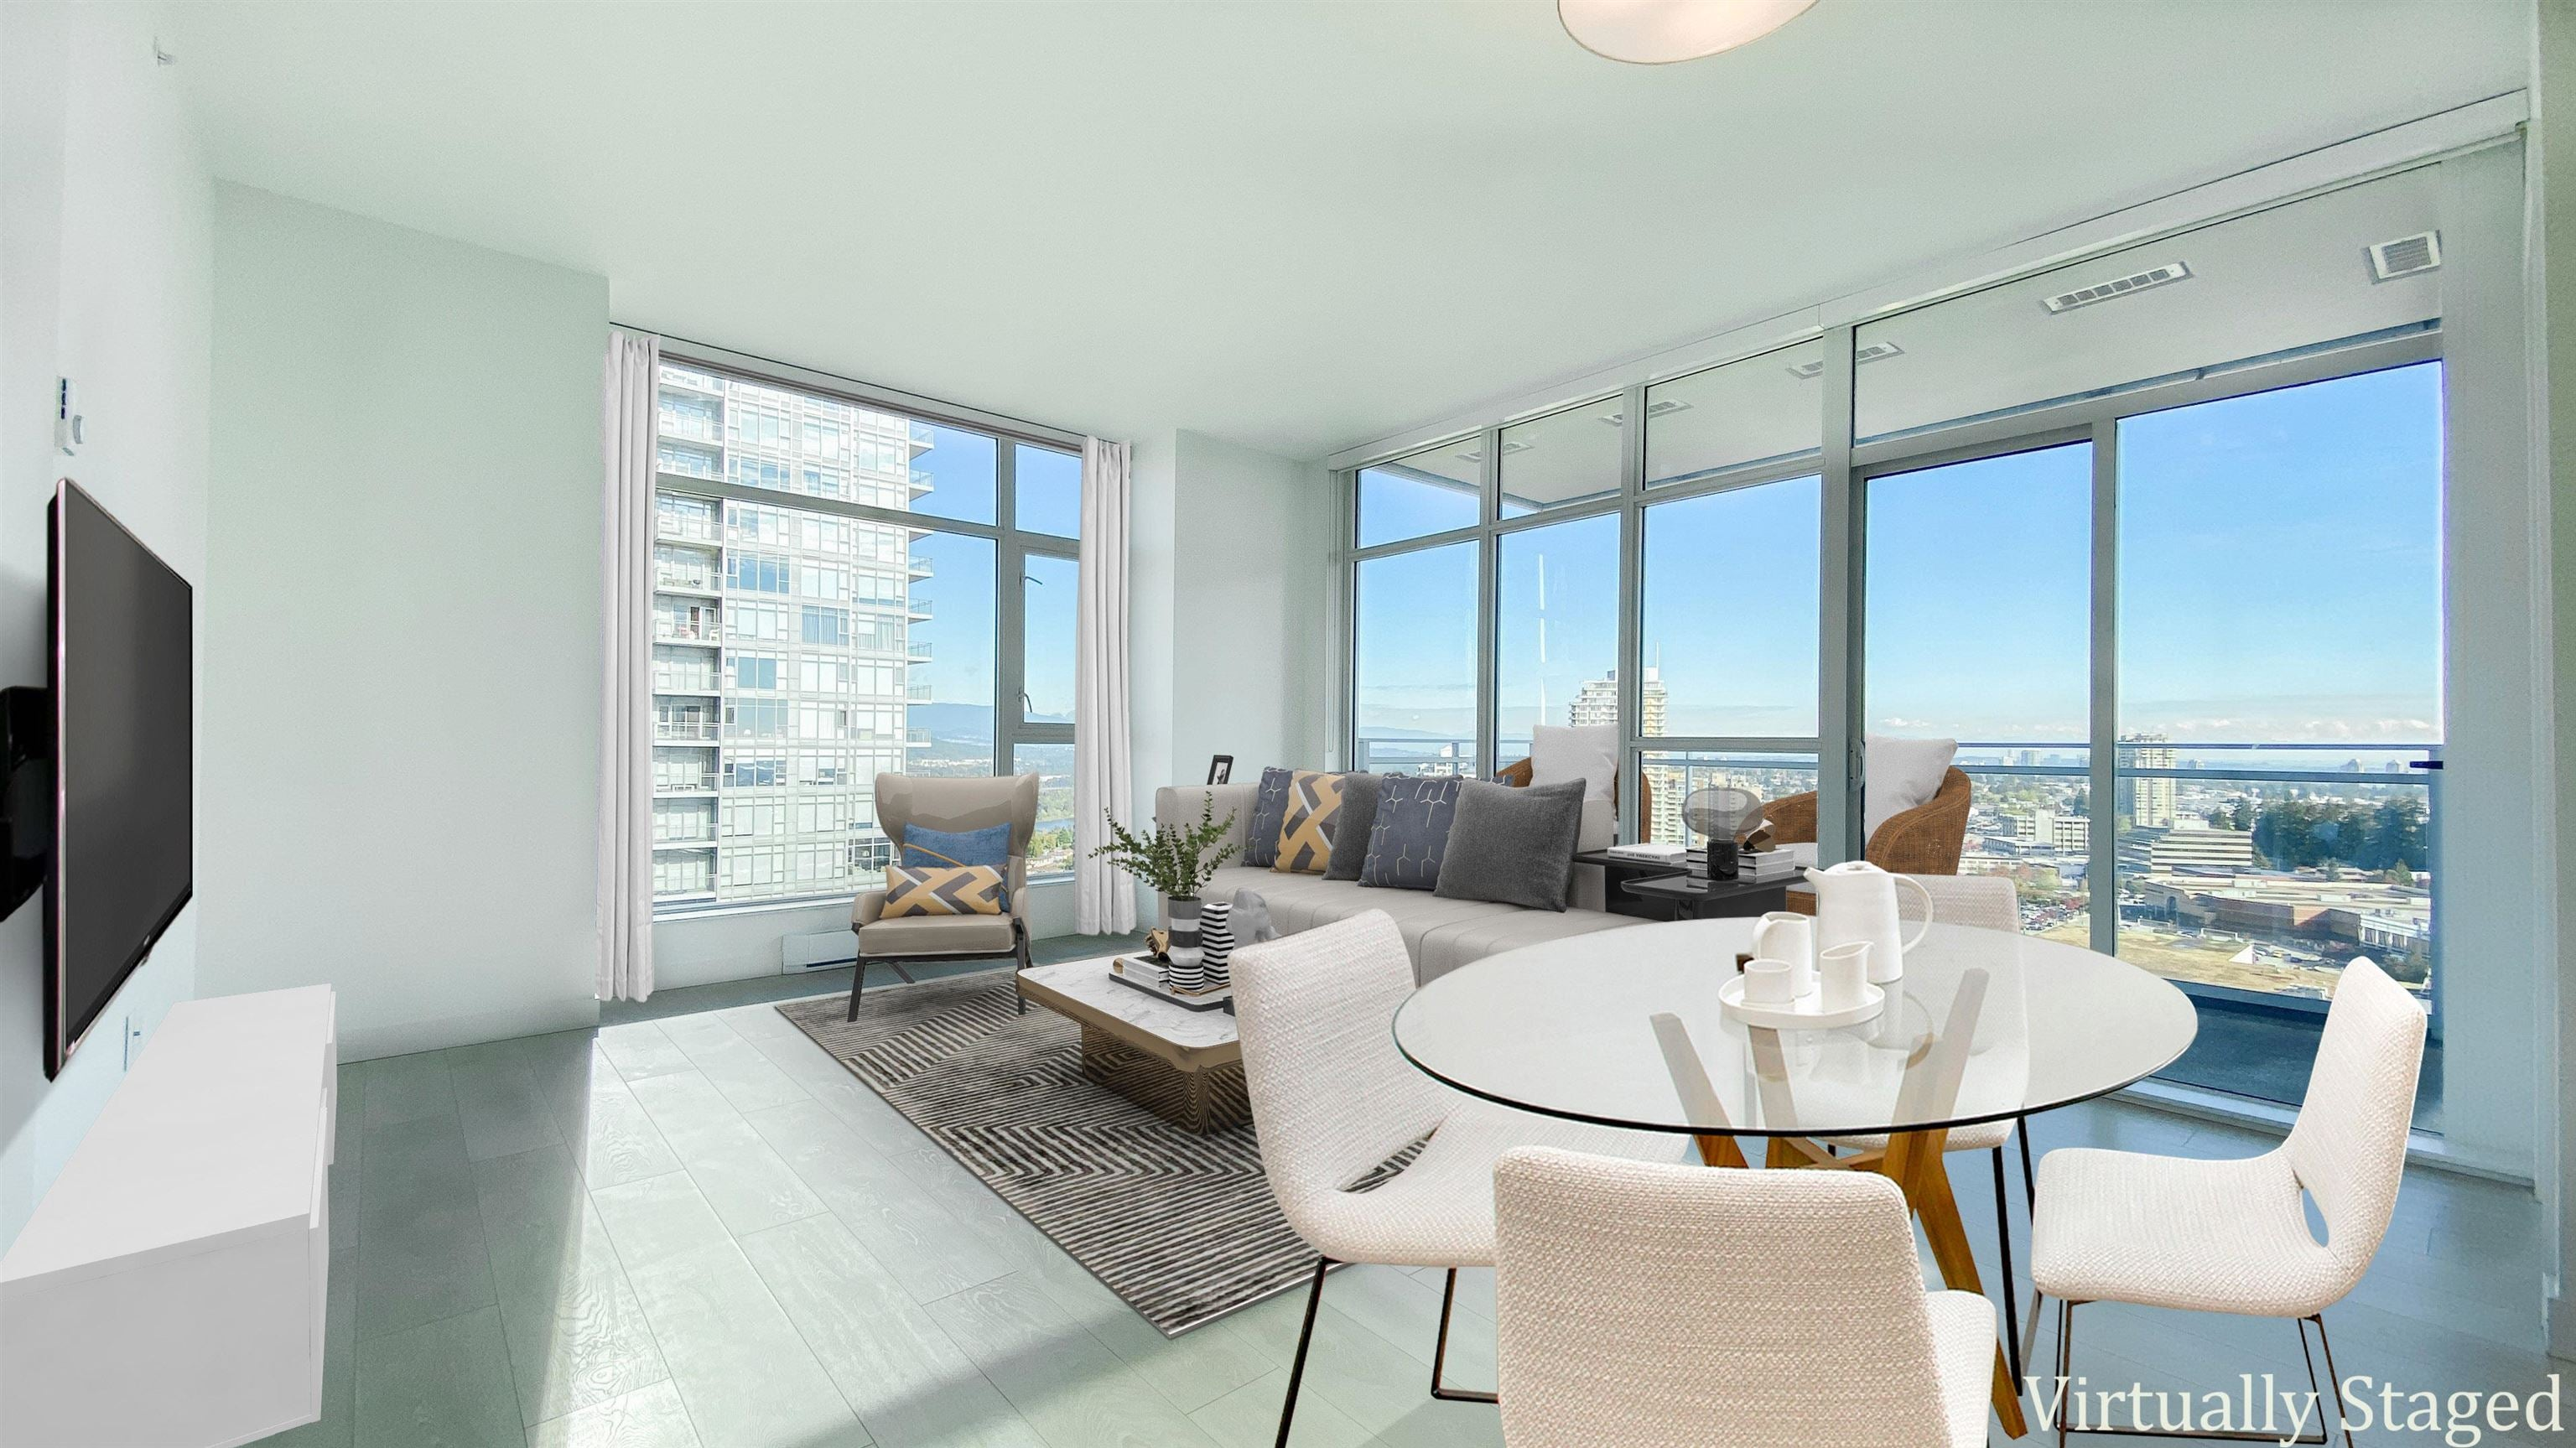 2510 4670 ASSEMBLY WAY - Metrotown Apartment/Condo for sale, 2 Bedrooms (R2625732) - #3